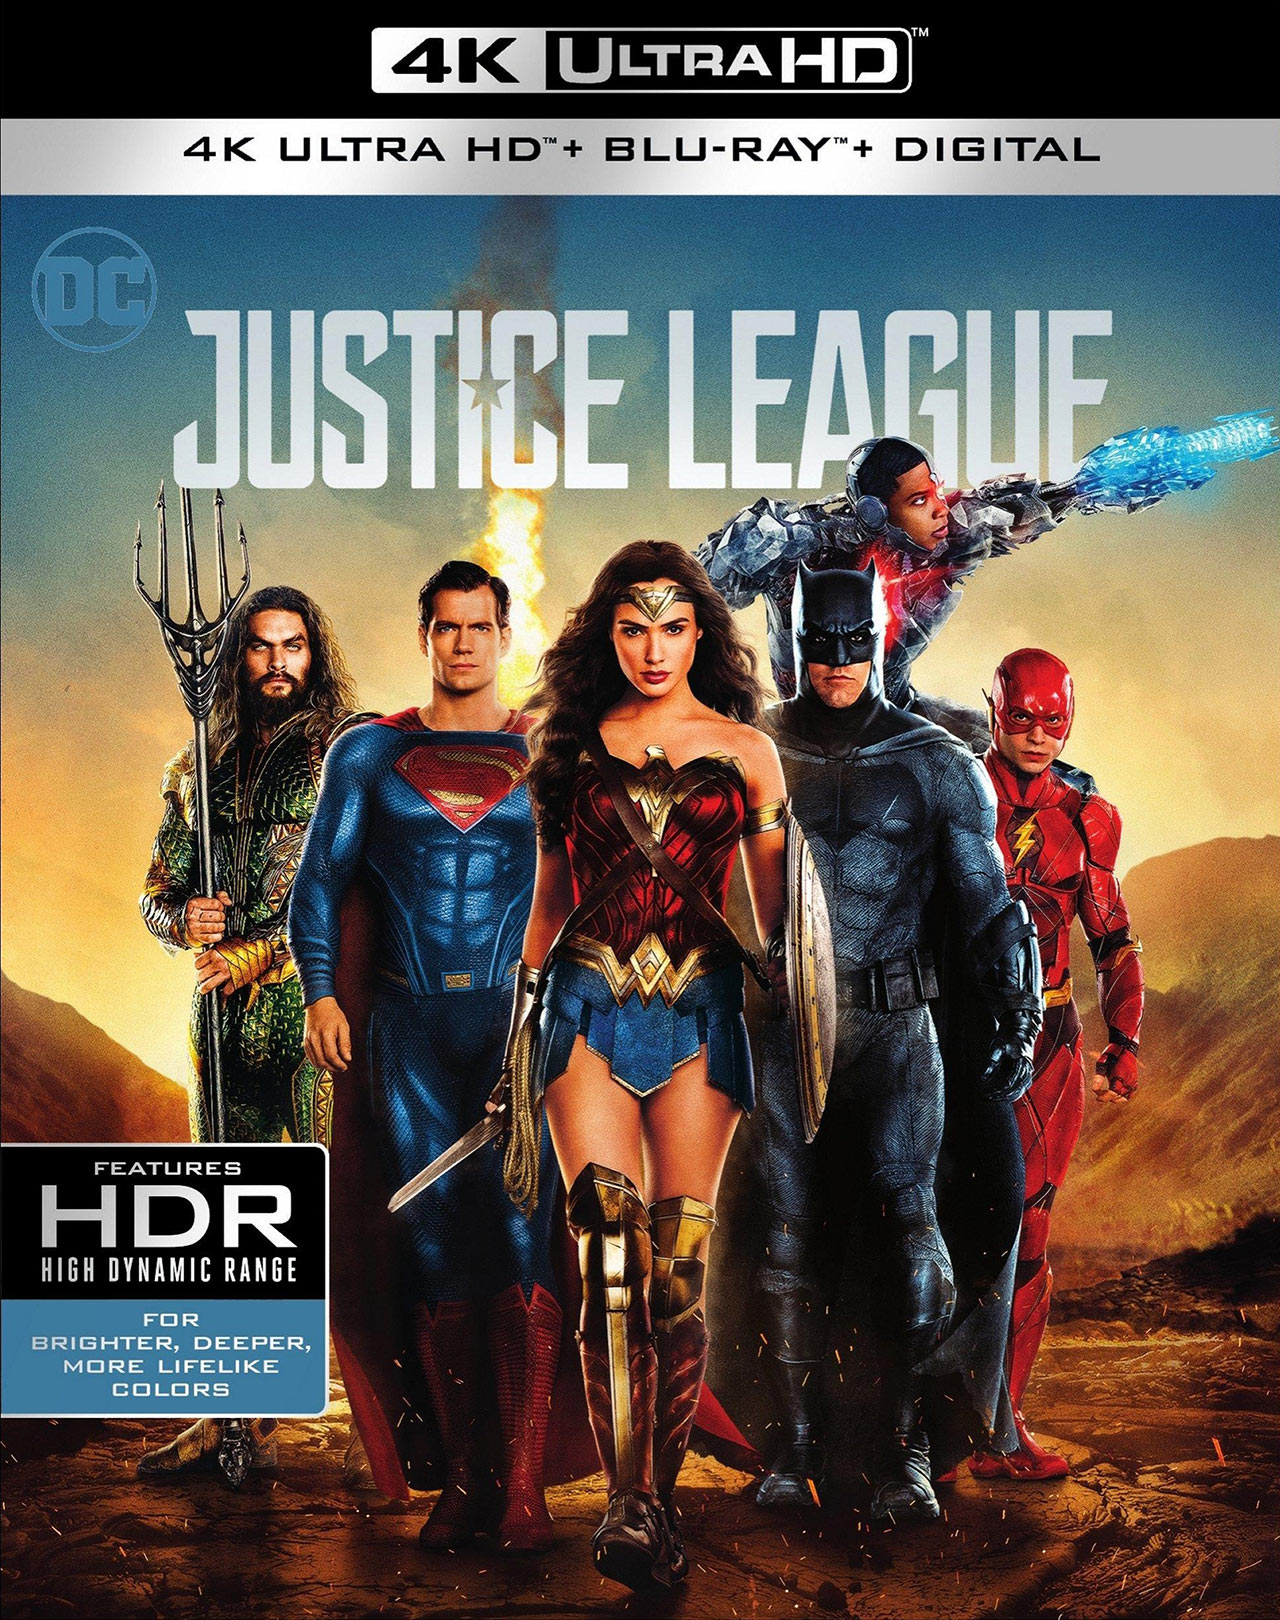 Justice League 4K HDR Blu-ray